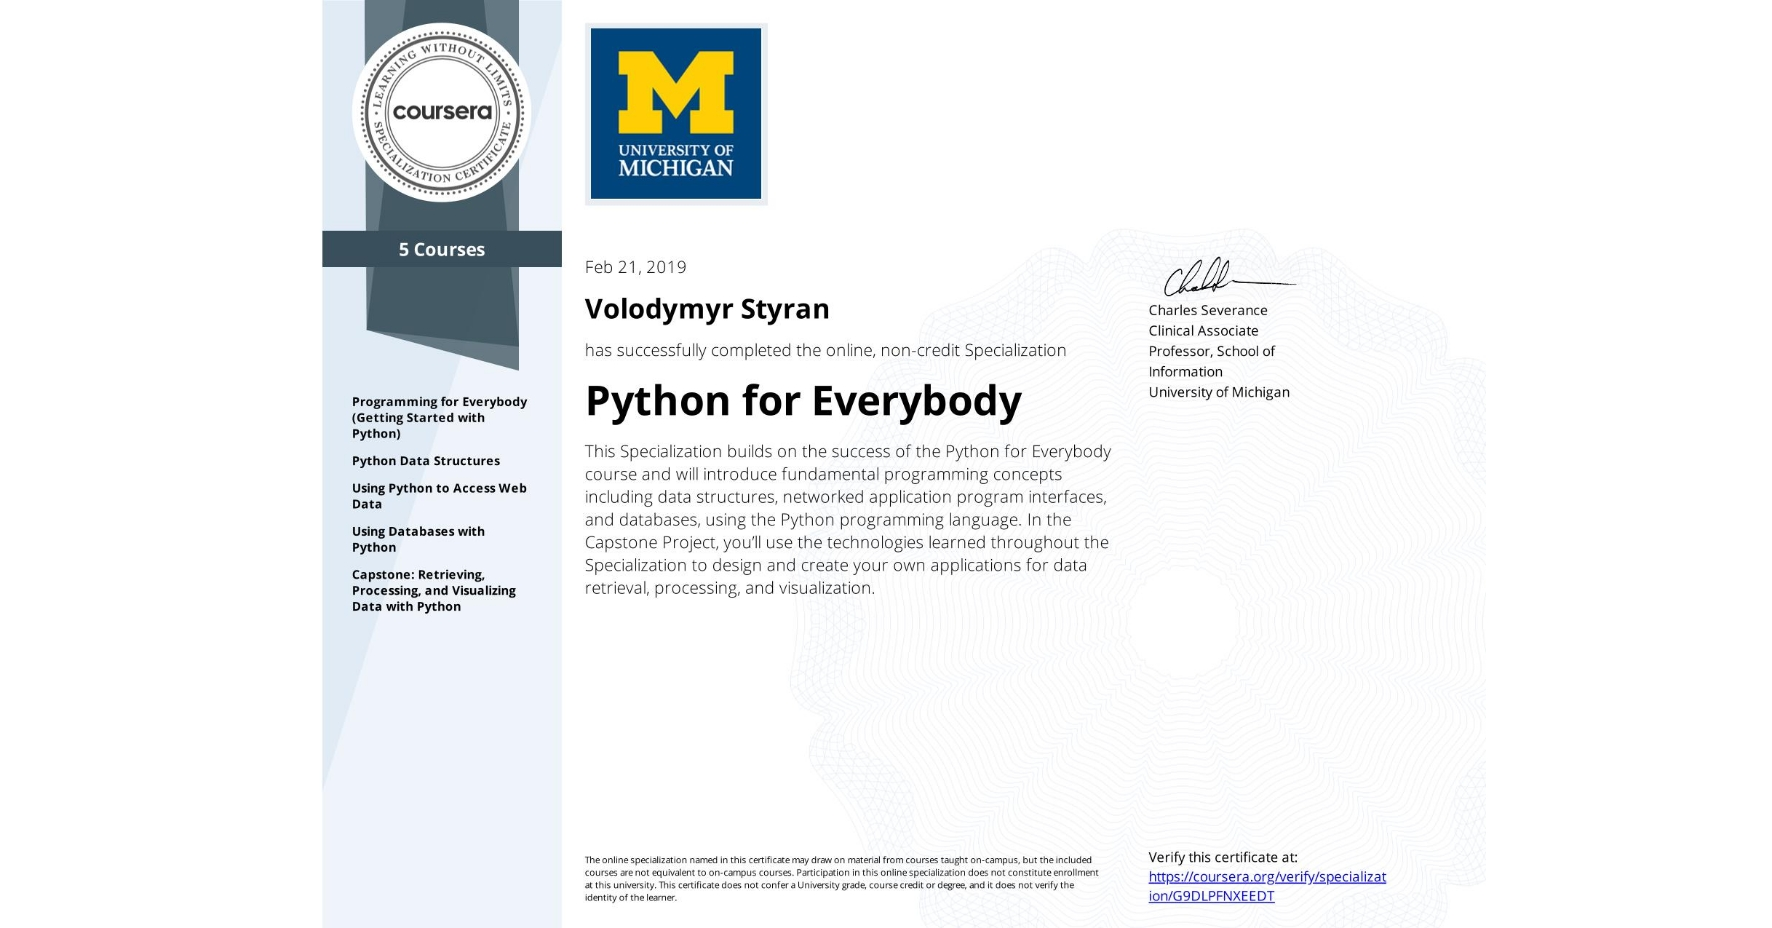 View certificate for Volodymyr Styran, Python for Everybody, offered through Coursera. This Specialization builds on the success of the Python for Everybody course and will introduce fundamental programming concepts including data structures, networked application program interfaces, and databases, using the Python programming language. In the Capstone Project, you'll use the technologies learned throughout the Specialization to design and create your own applications for data retrieval, processing, and visualization.